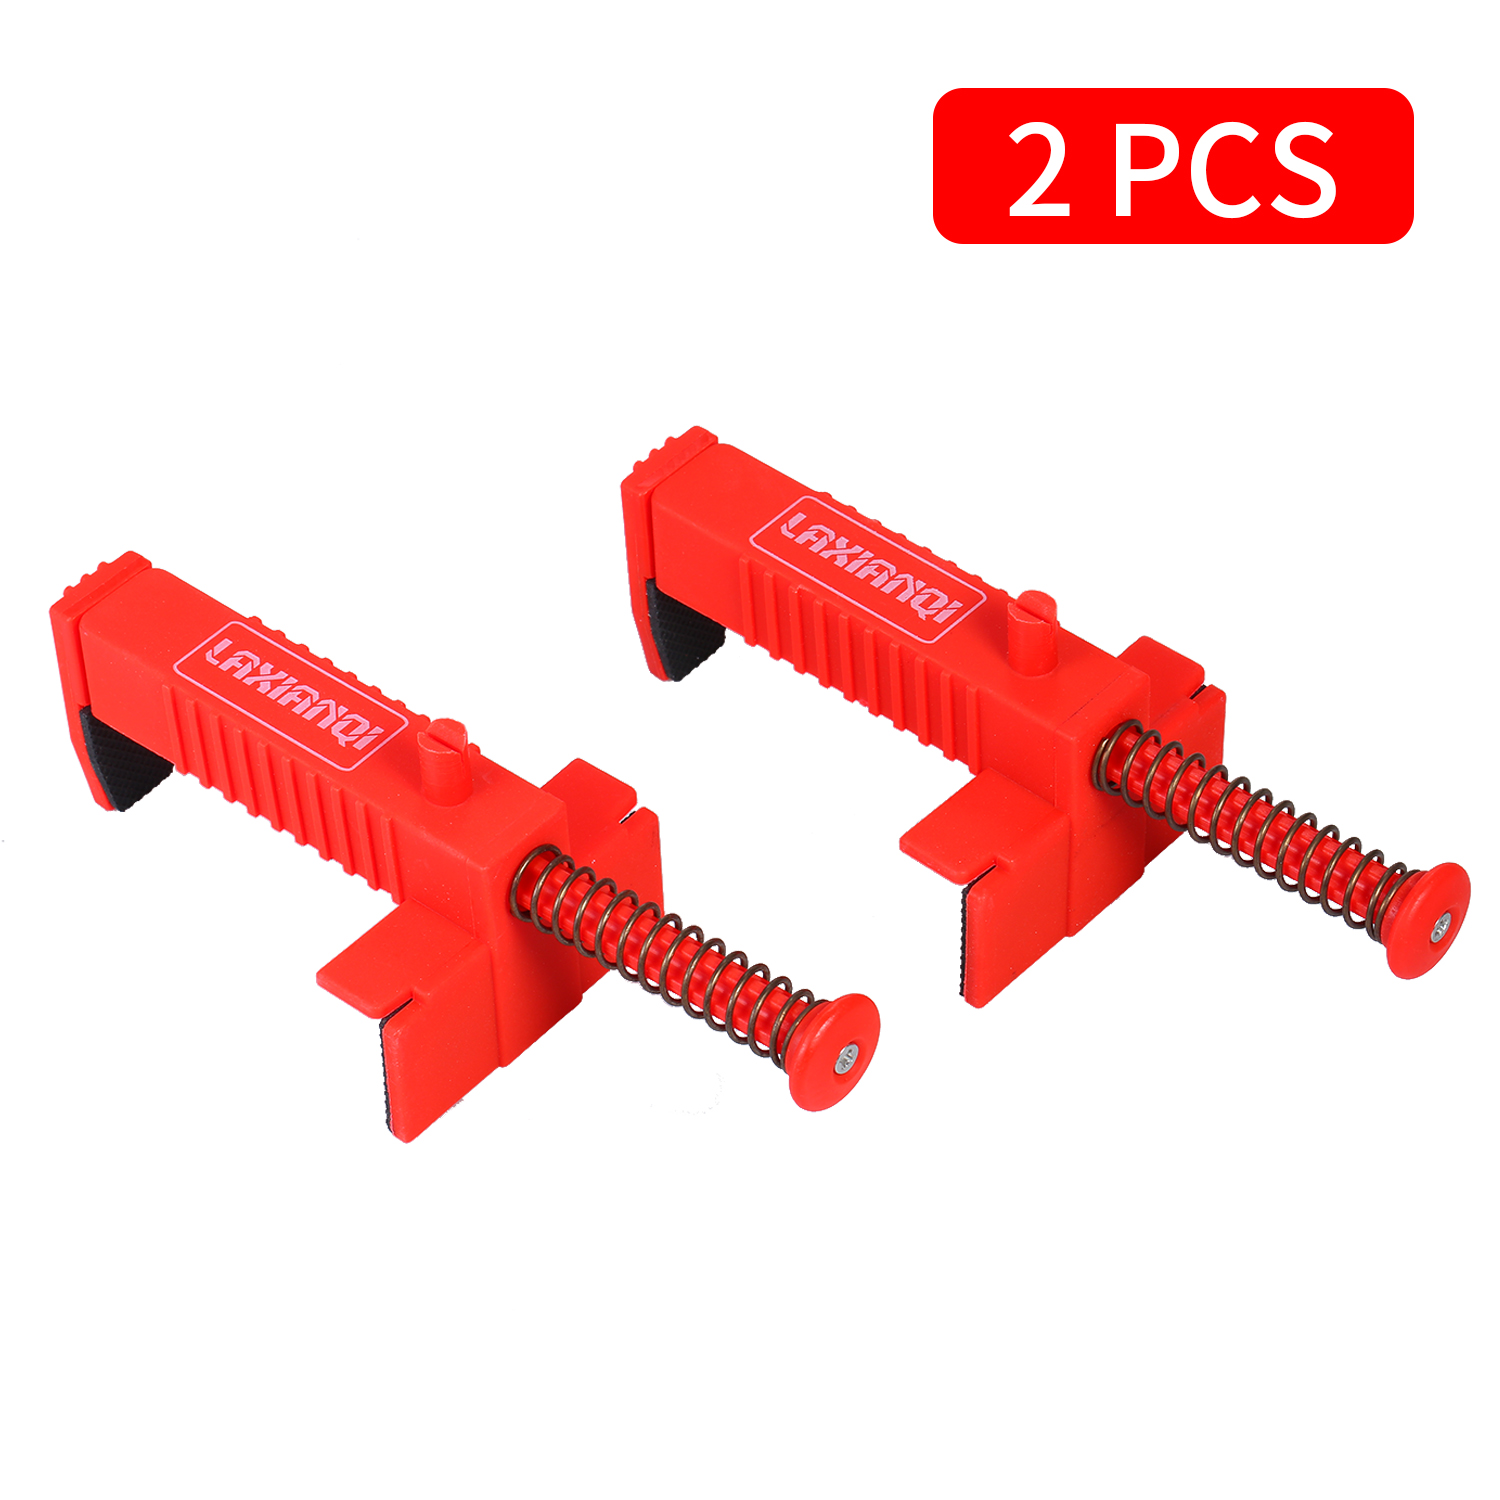 2PCS Building Brick-laying Wire Stretcher Bricklaying Tool Brick Clamps Edge Clamps Tool For Building Fixator Wire Puller